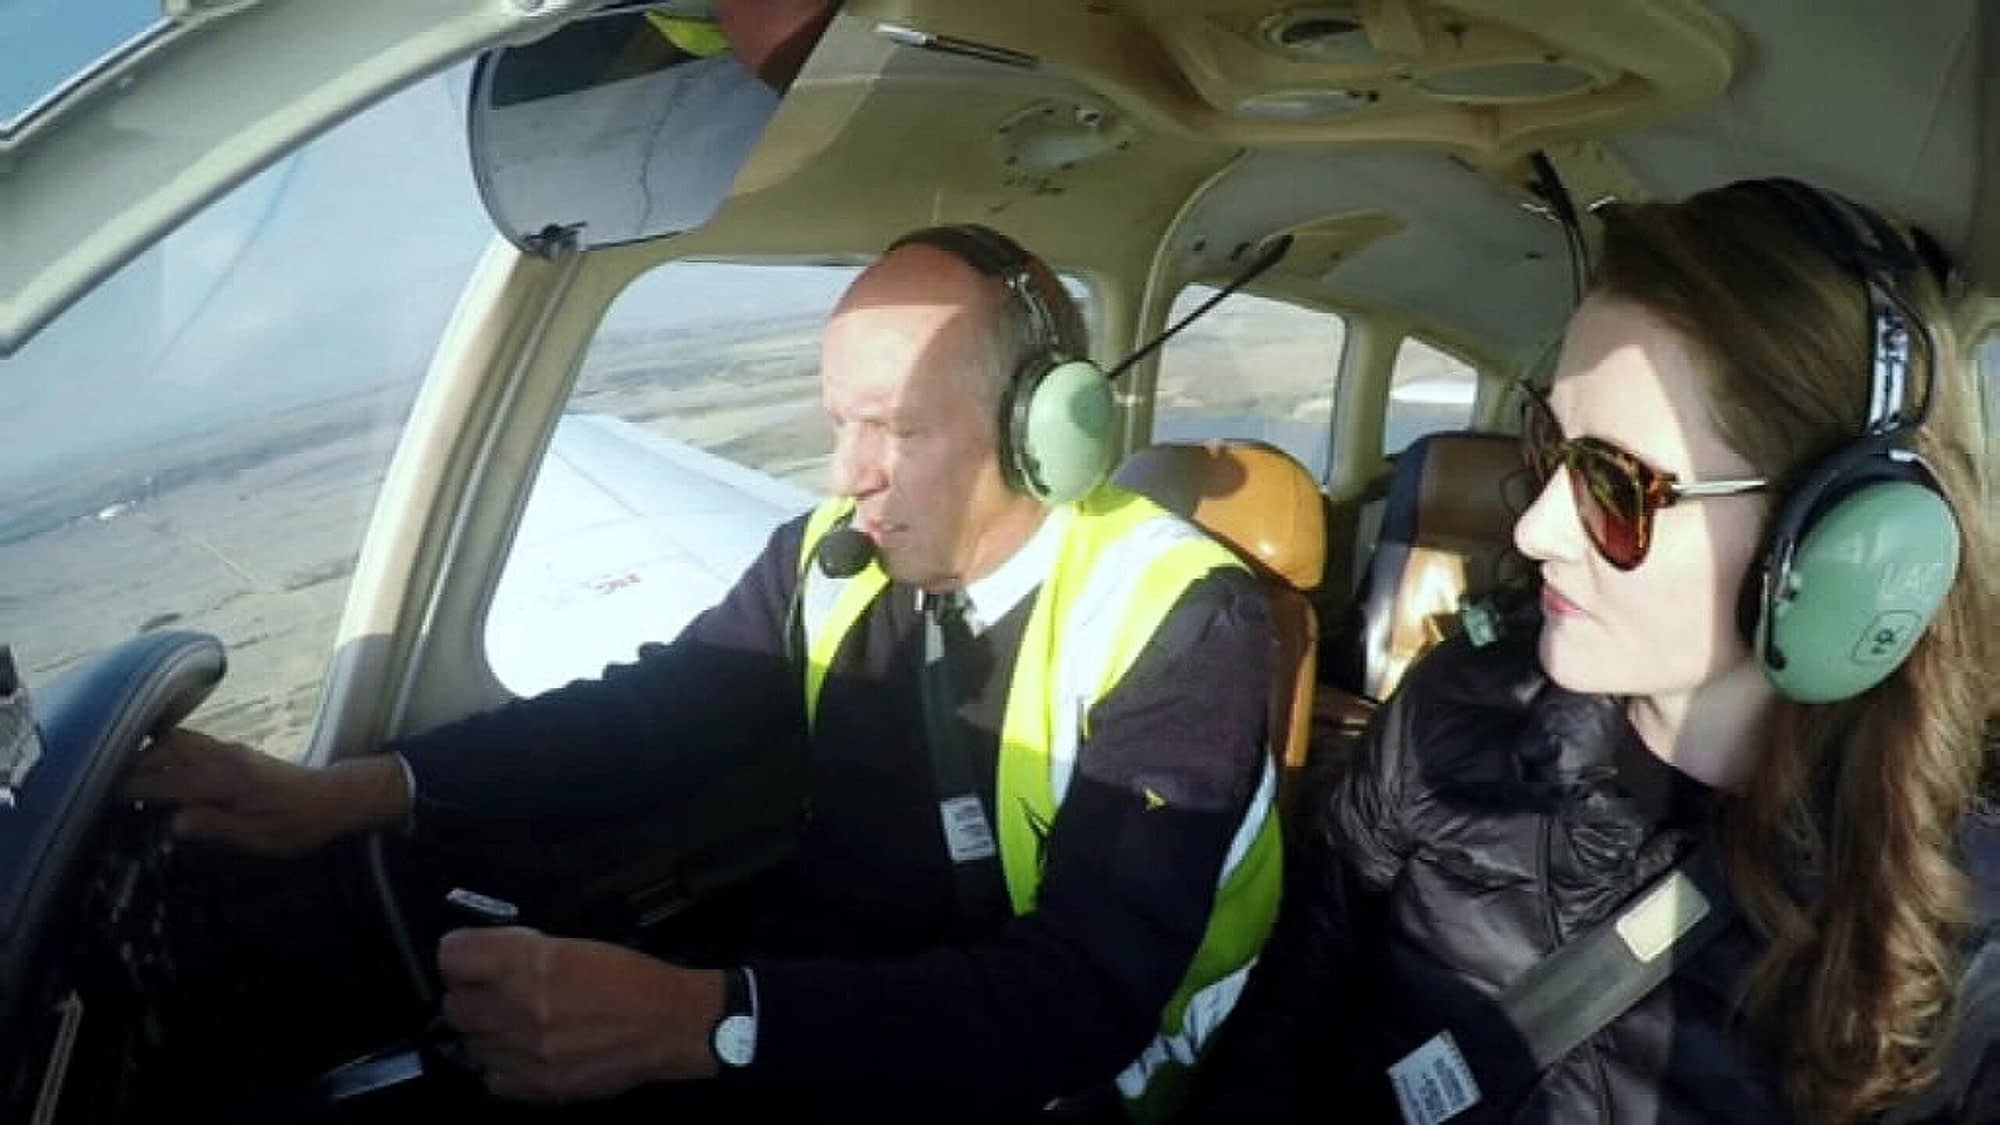 Instructor demonstrates controls